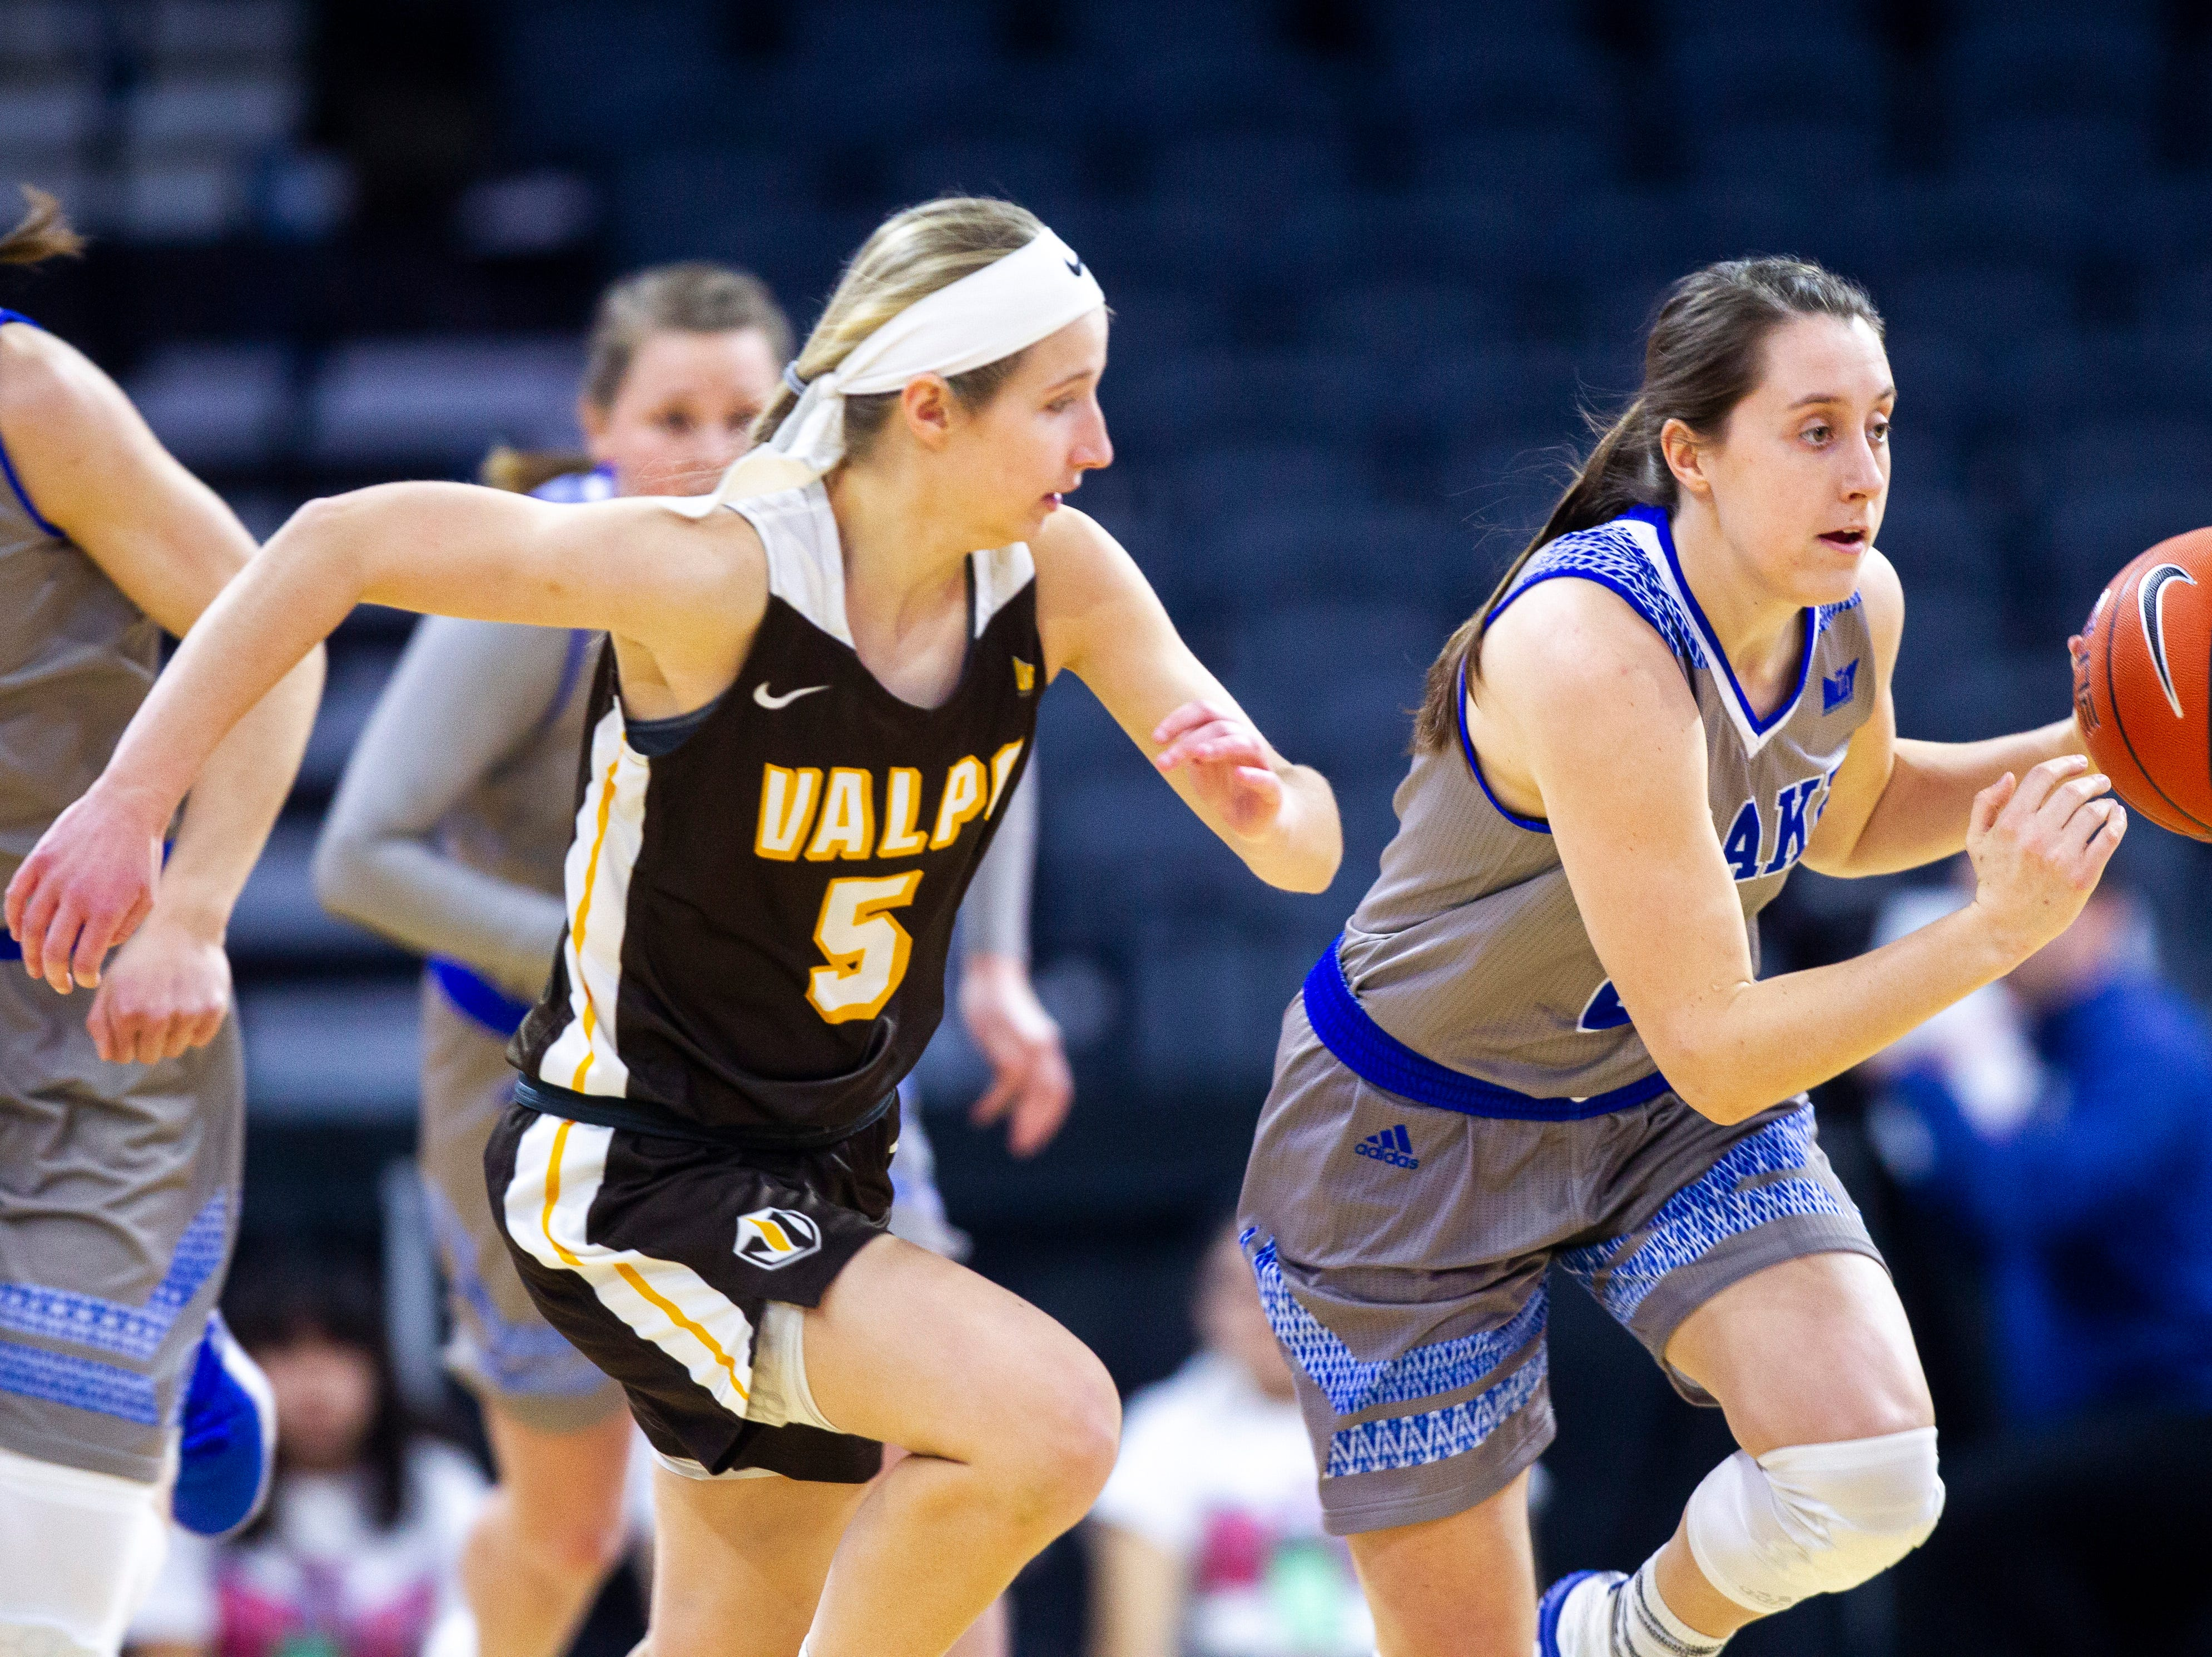 Drake guard Maddie Monahan, right, takes the ball up court while Valparaiso guard Shay Frederick (5) defends during a NCAA Missouri Valley Conference women's basketball quarterfinal tournament game, Friday, March 15, 2019, at the TaxSlayer Center in Moline, Illinois.